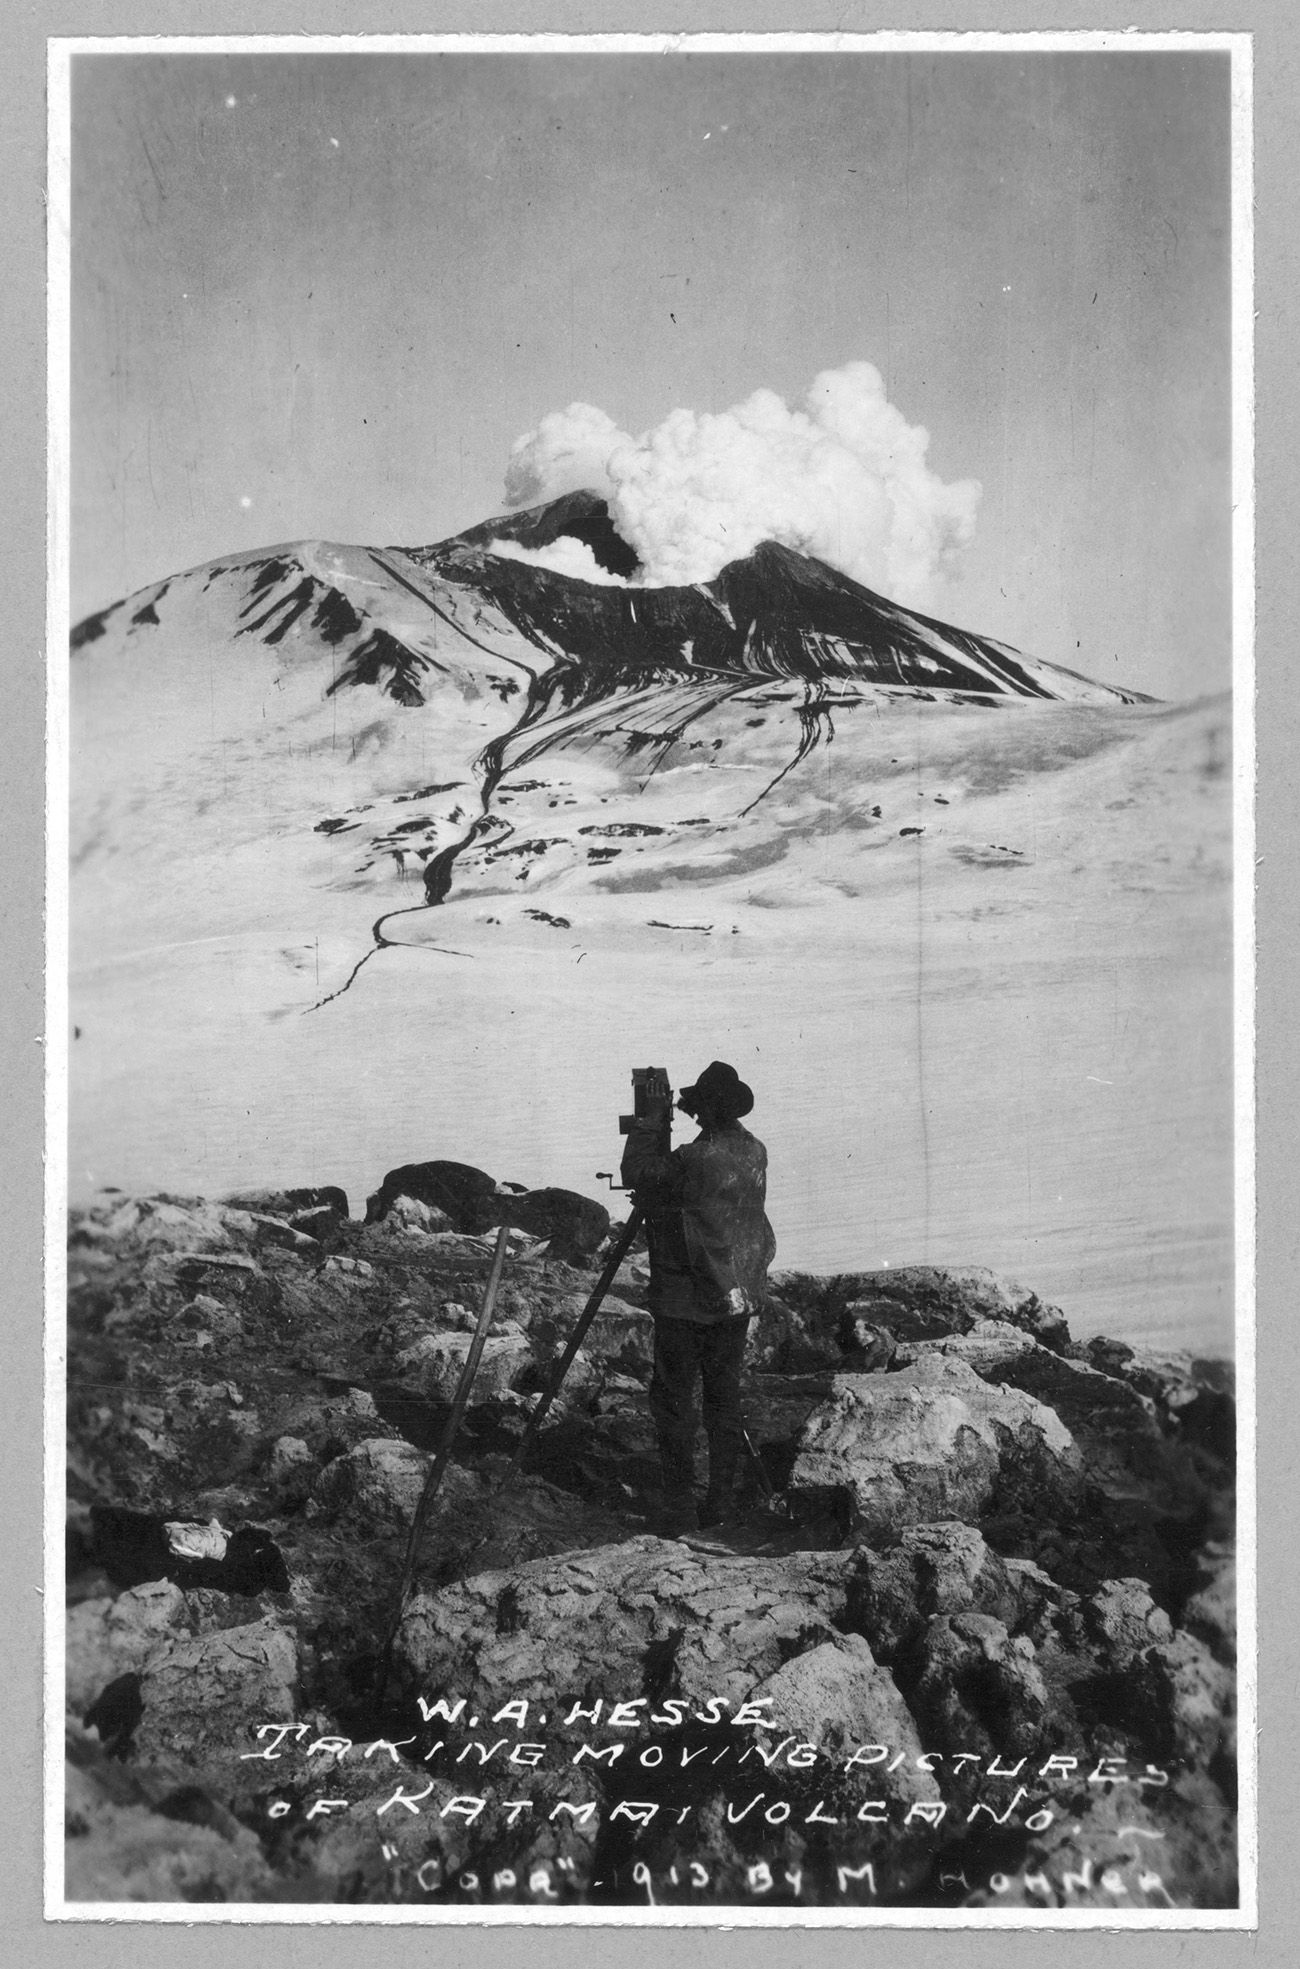 W.A. Hesse taking moving pictures of Katmai Volcano. Photo copyrighted 1913 by M. Horner. //hdl.loc.gov/loc.pnp/ppmsc.01940